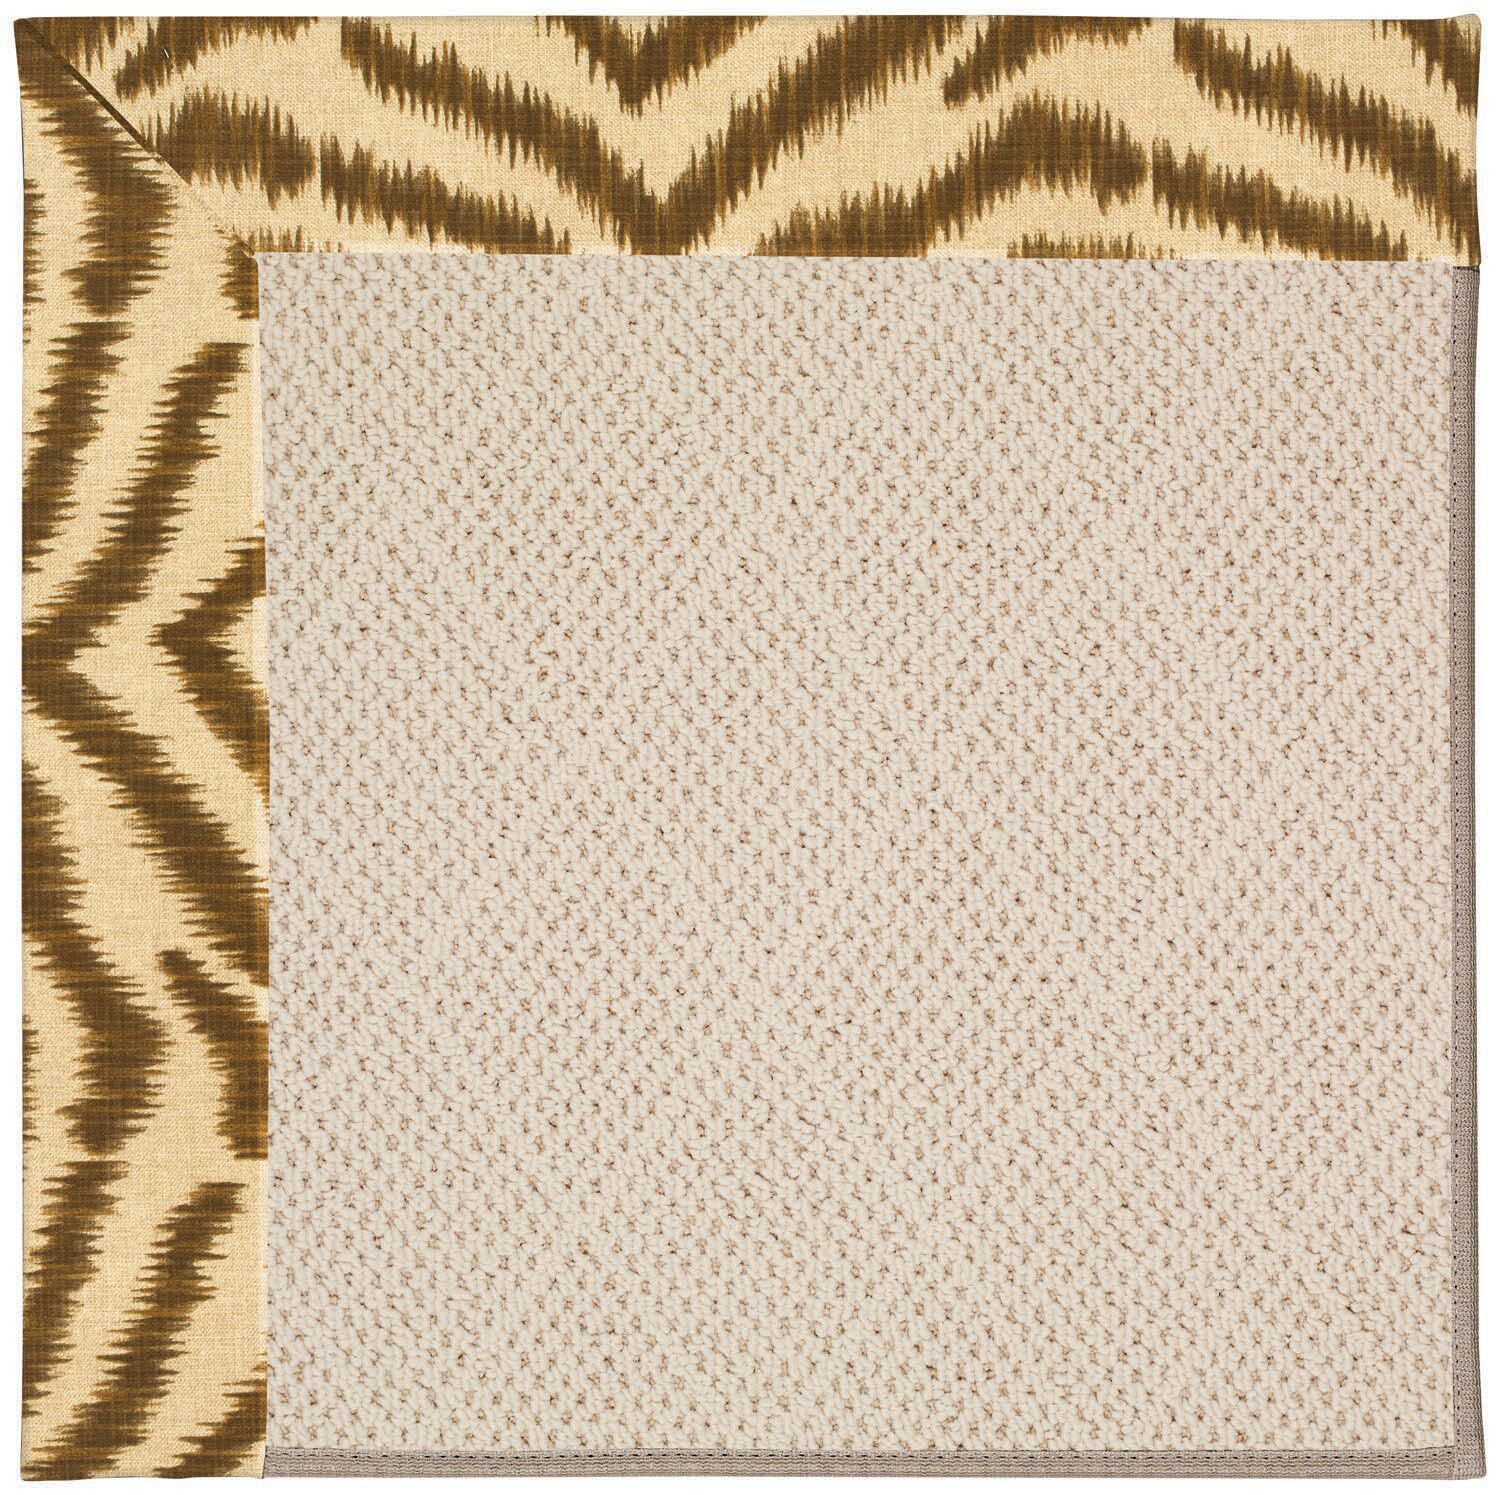 Lisle Light Brown Indoor/Outdoor Area Rug Rug Size: Square 12'